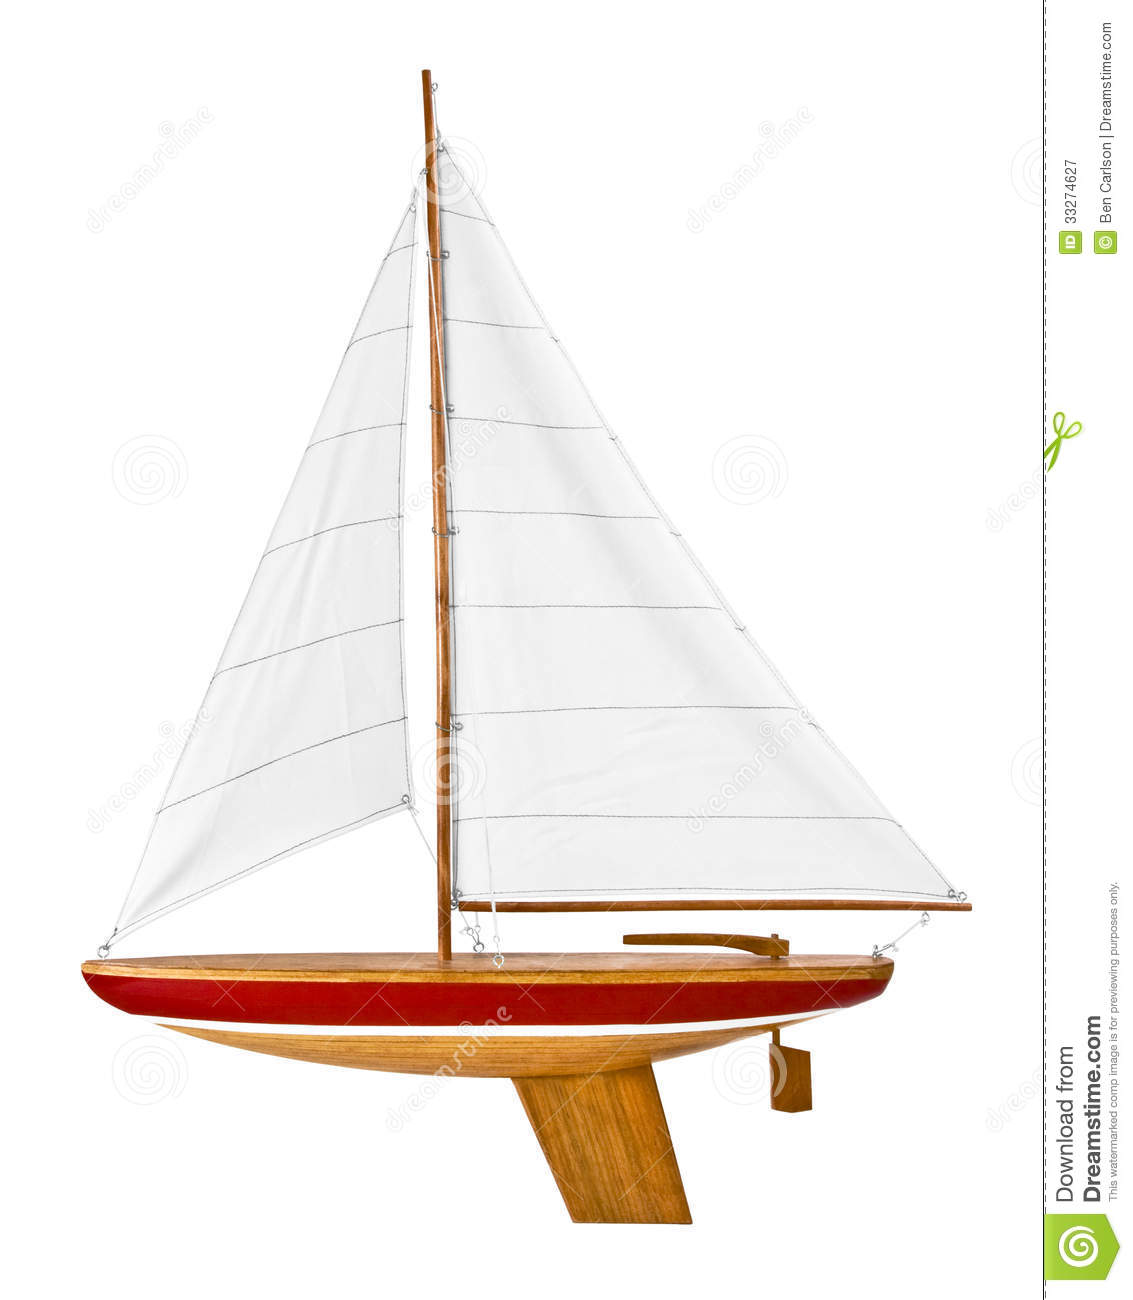 Sailboat Toy Royalty Free Stock Photography - Image: 33274627